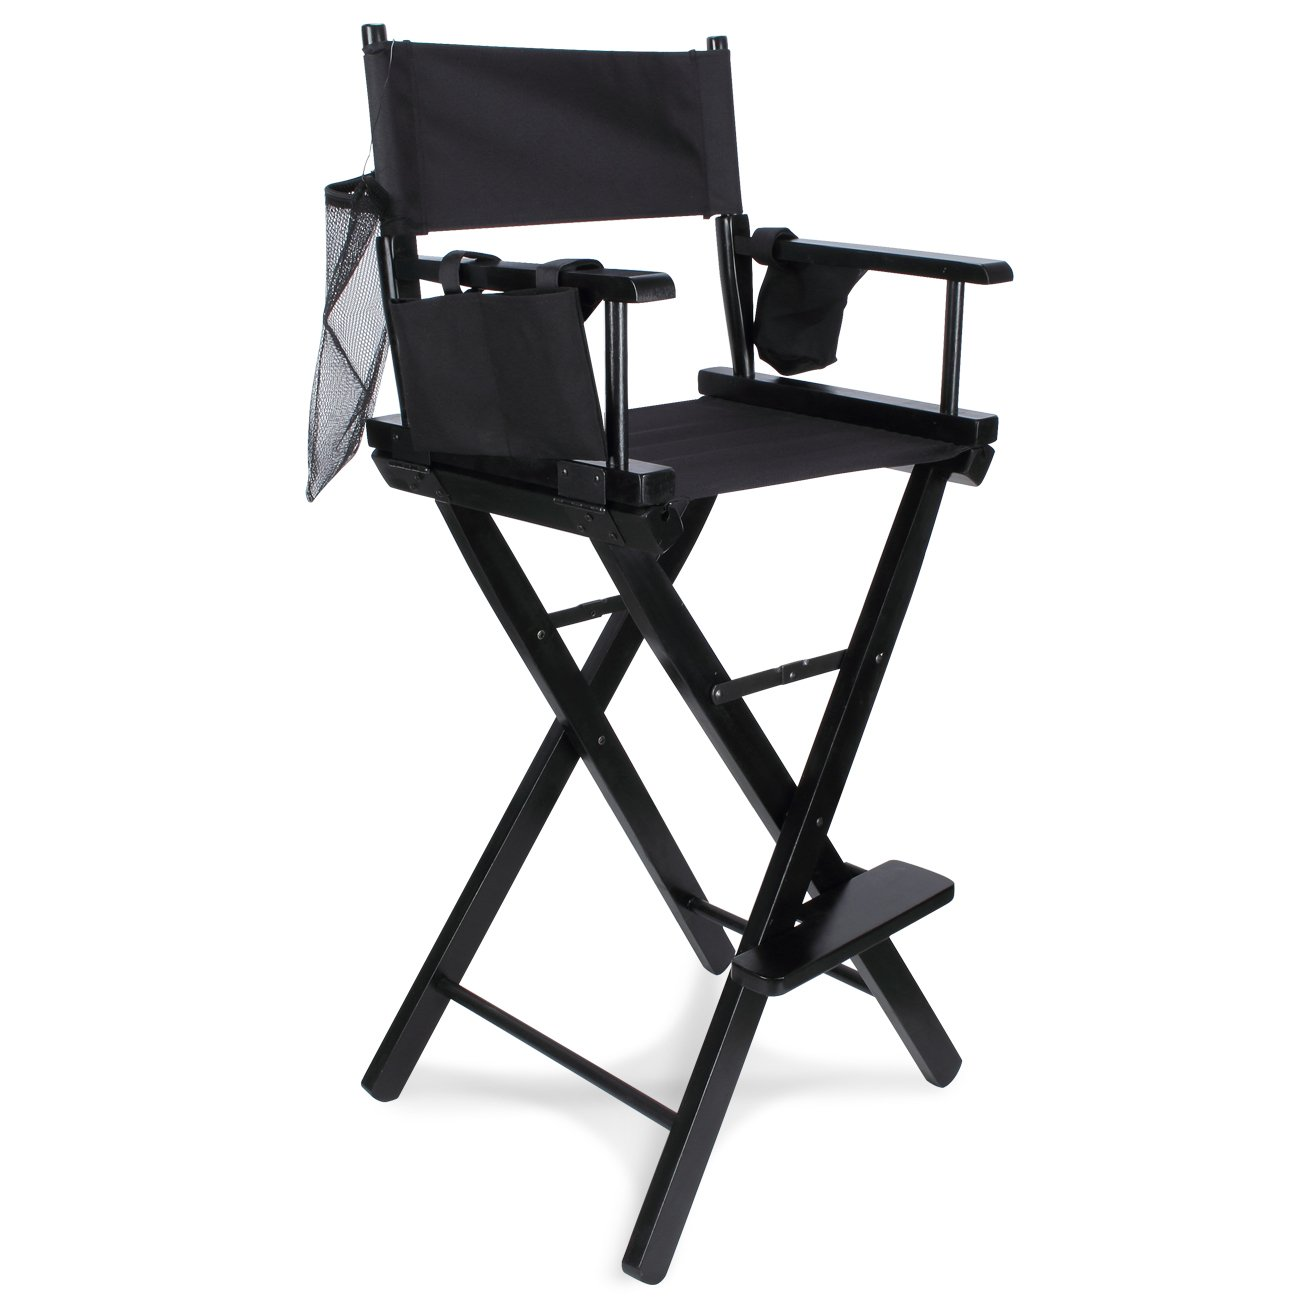 Bellavie Professional 30'' Extra-Wide Portable Makeup Artist/Director Chair with Cup Holder, Storage Bag, Black